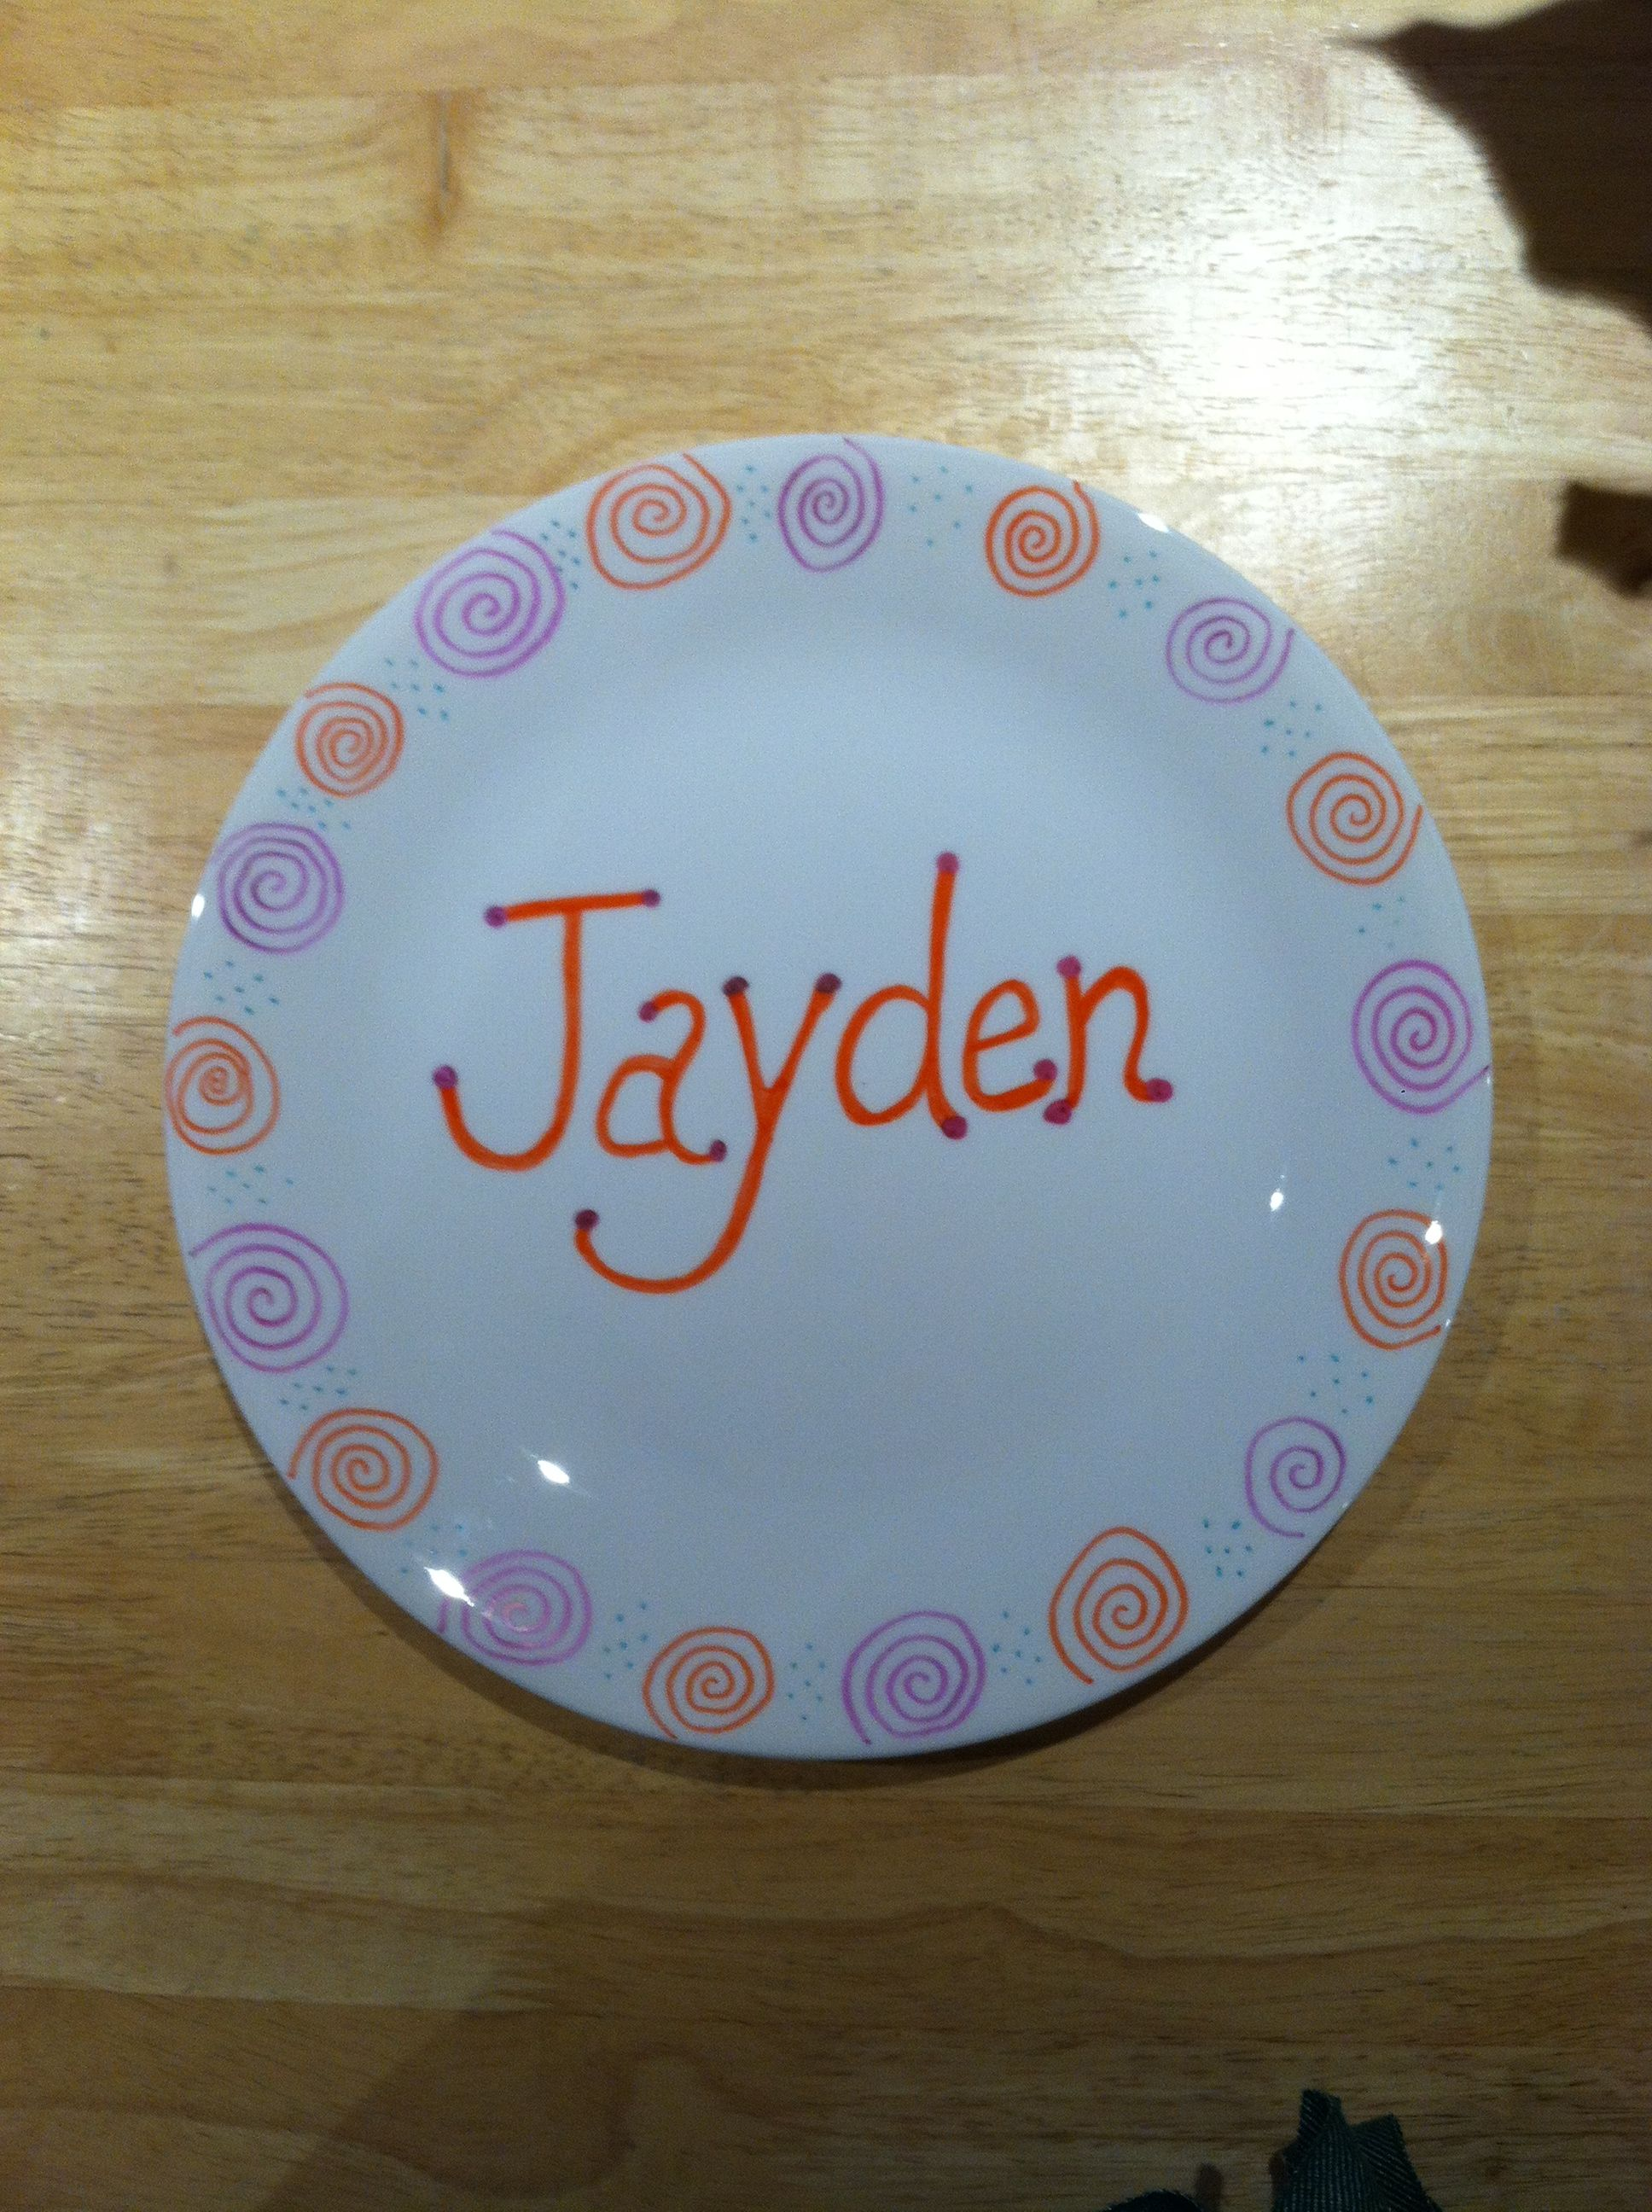 Personalized dinner plates for kids Sharpie marker Bake at 350 for 30 minutes. & Personalized dinner plates for kids Sharpie marker Bake at 350 for ...